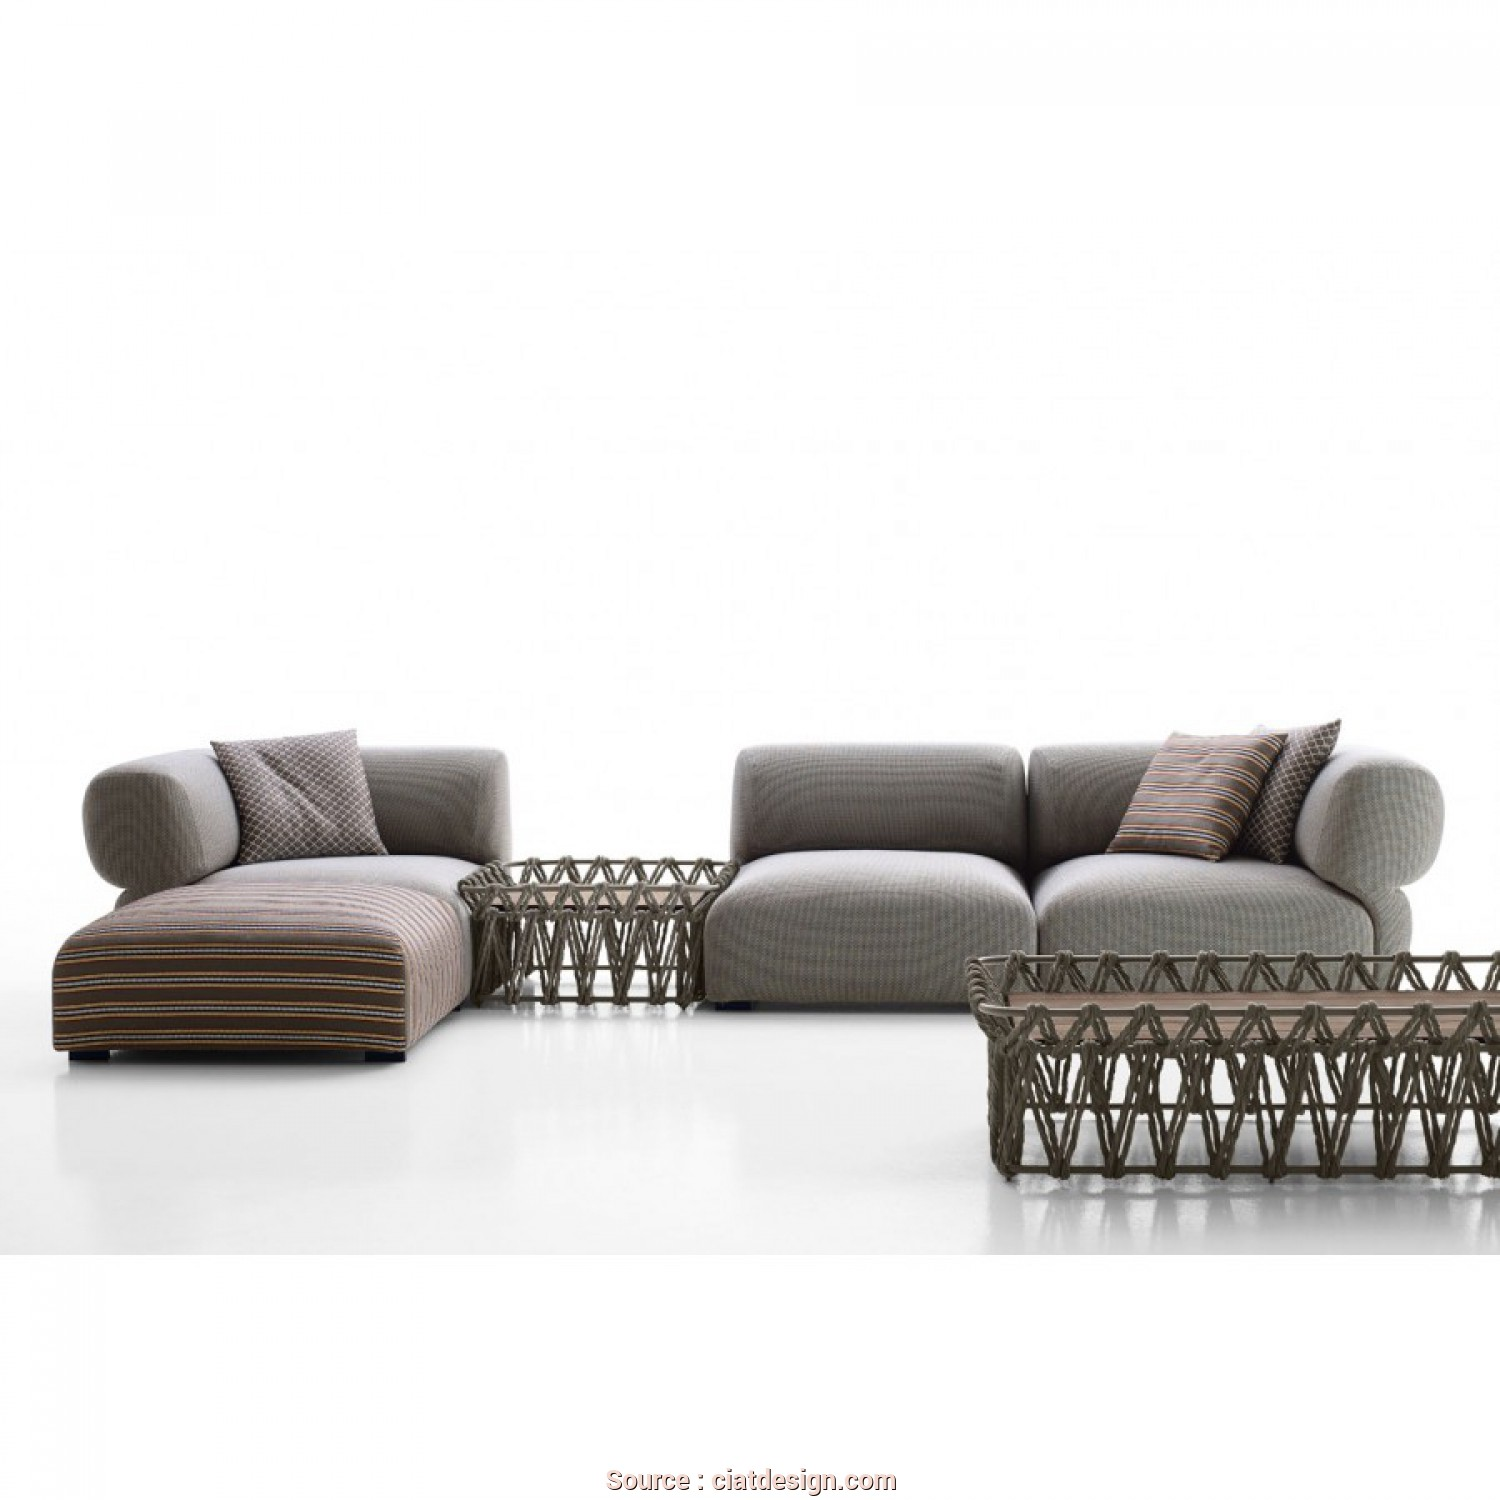 Divano, Chaise Longue Design, Casuale Butterfly Sofa With Chaise Longue By, Italia, Design By Patricia Urquiola Shop Online On CiatDesign